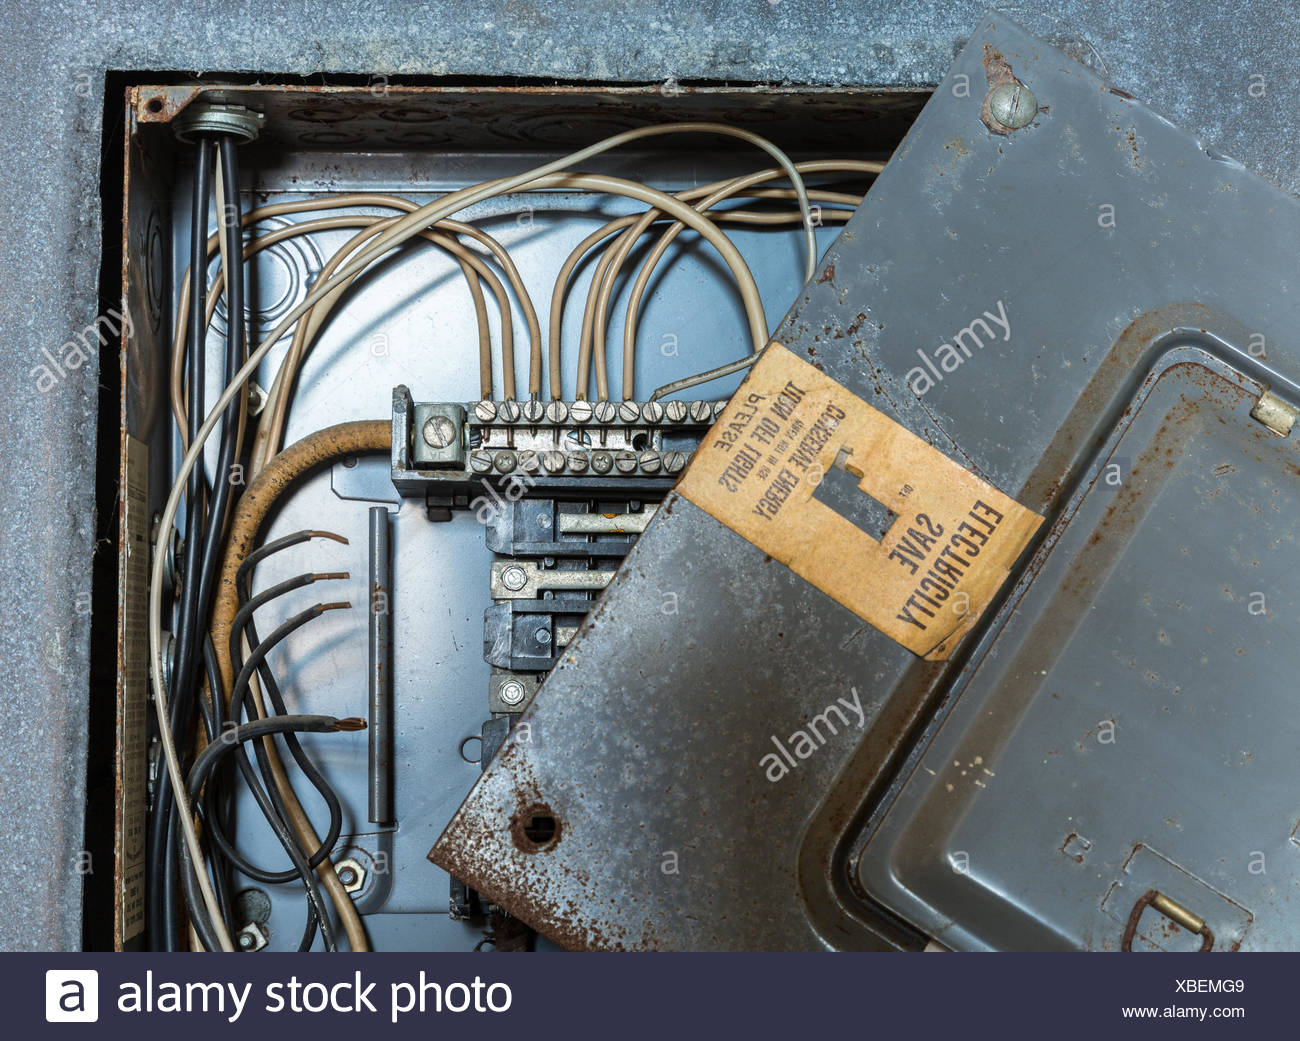 Old Wiring Box Schematic Diagrams House Electrical Distribution Or Stock Photo 282450569 Alamy Breaker